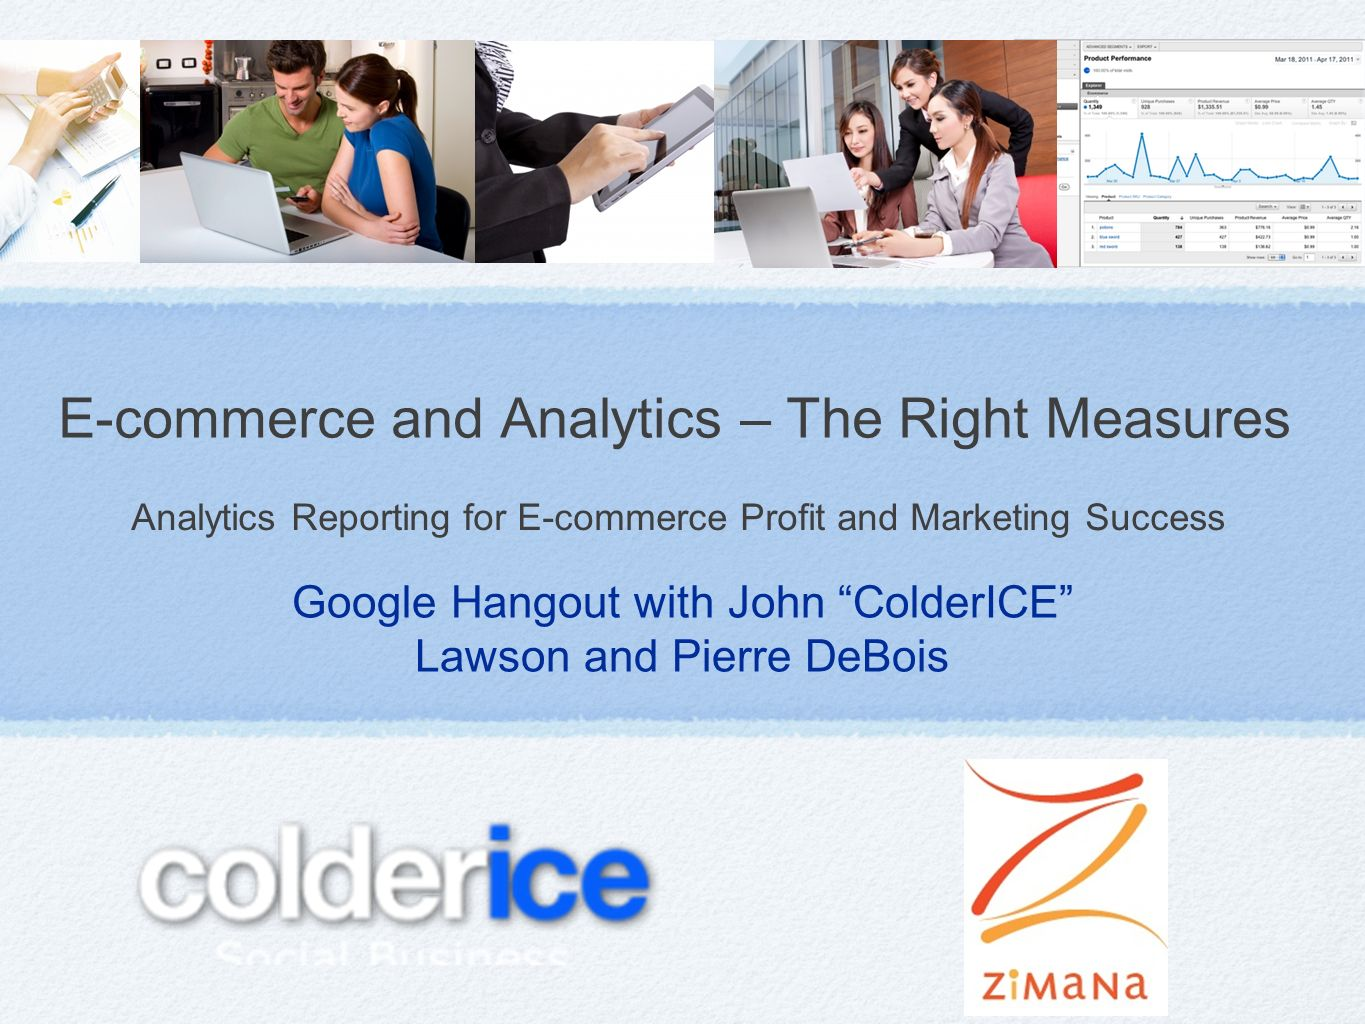 Google Hangout with John ColderICE Lawson and Pierre DeBois E-commerce and Analytics – The Right Measures Analytics Reporting for E-commerce Profit and Marketing Success